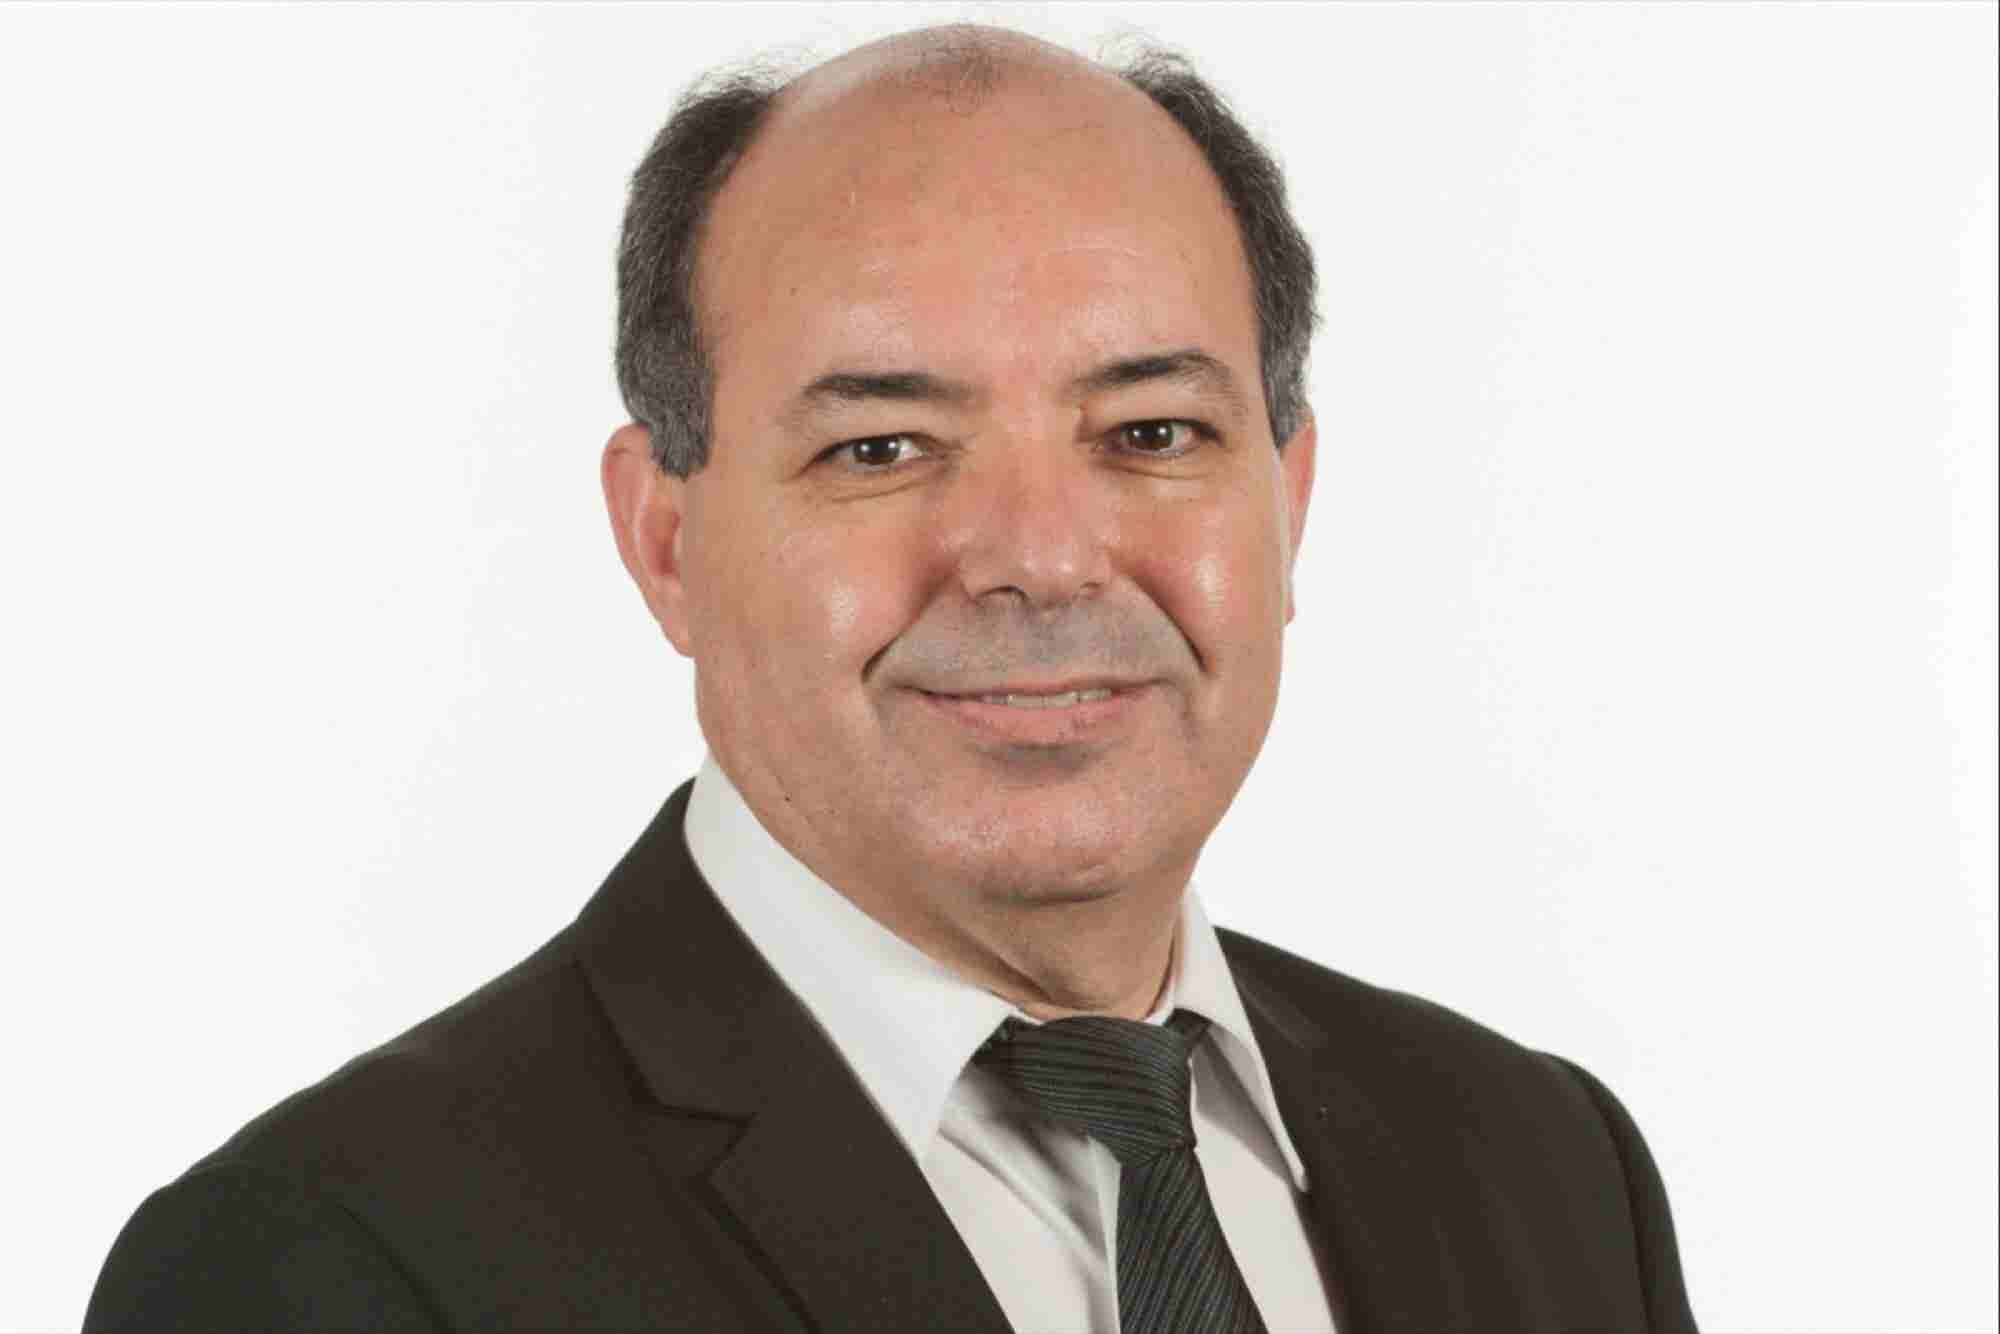 Follow The Leader: Laoucine Kerbache, Dean and CEO, HEC Paris in Qatar